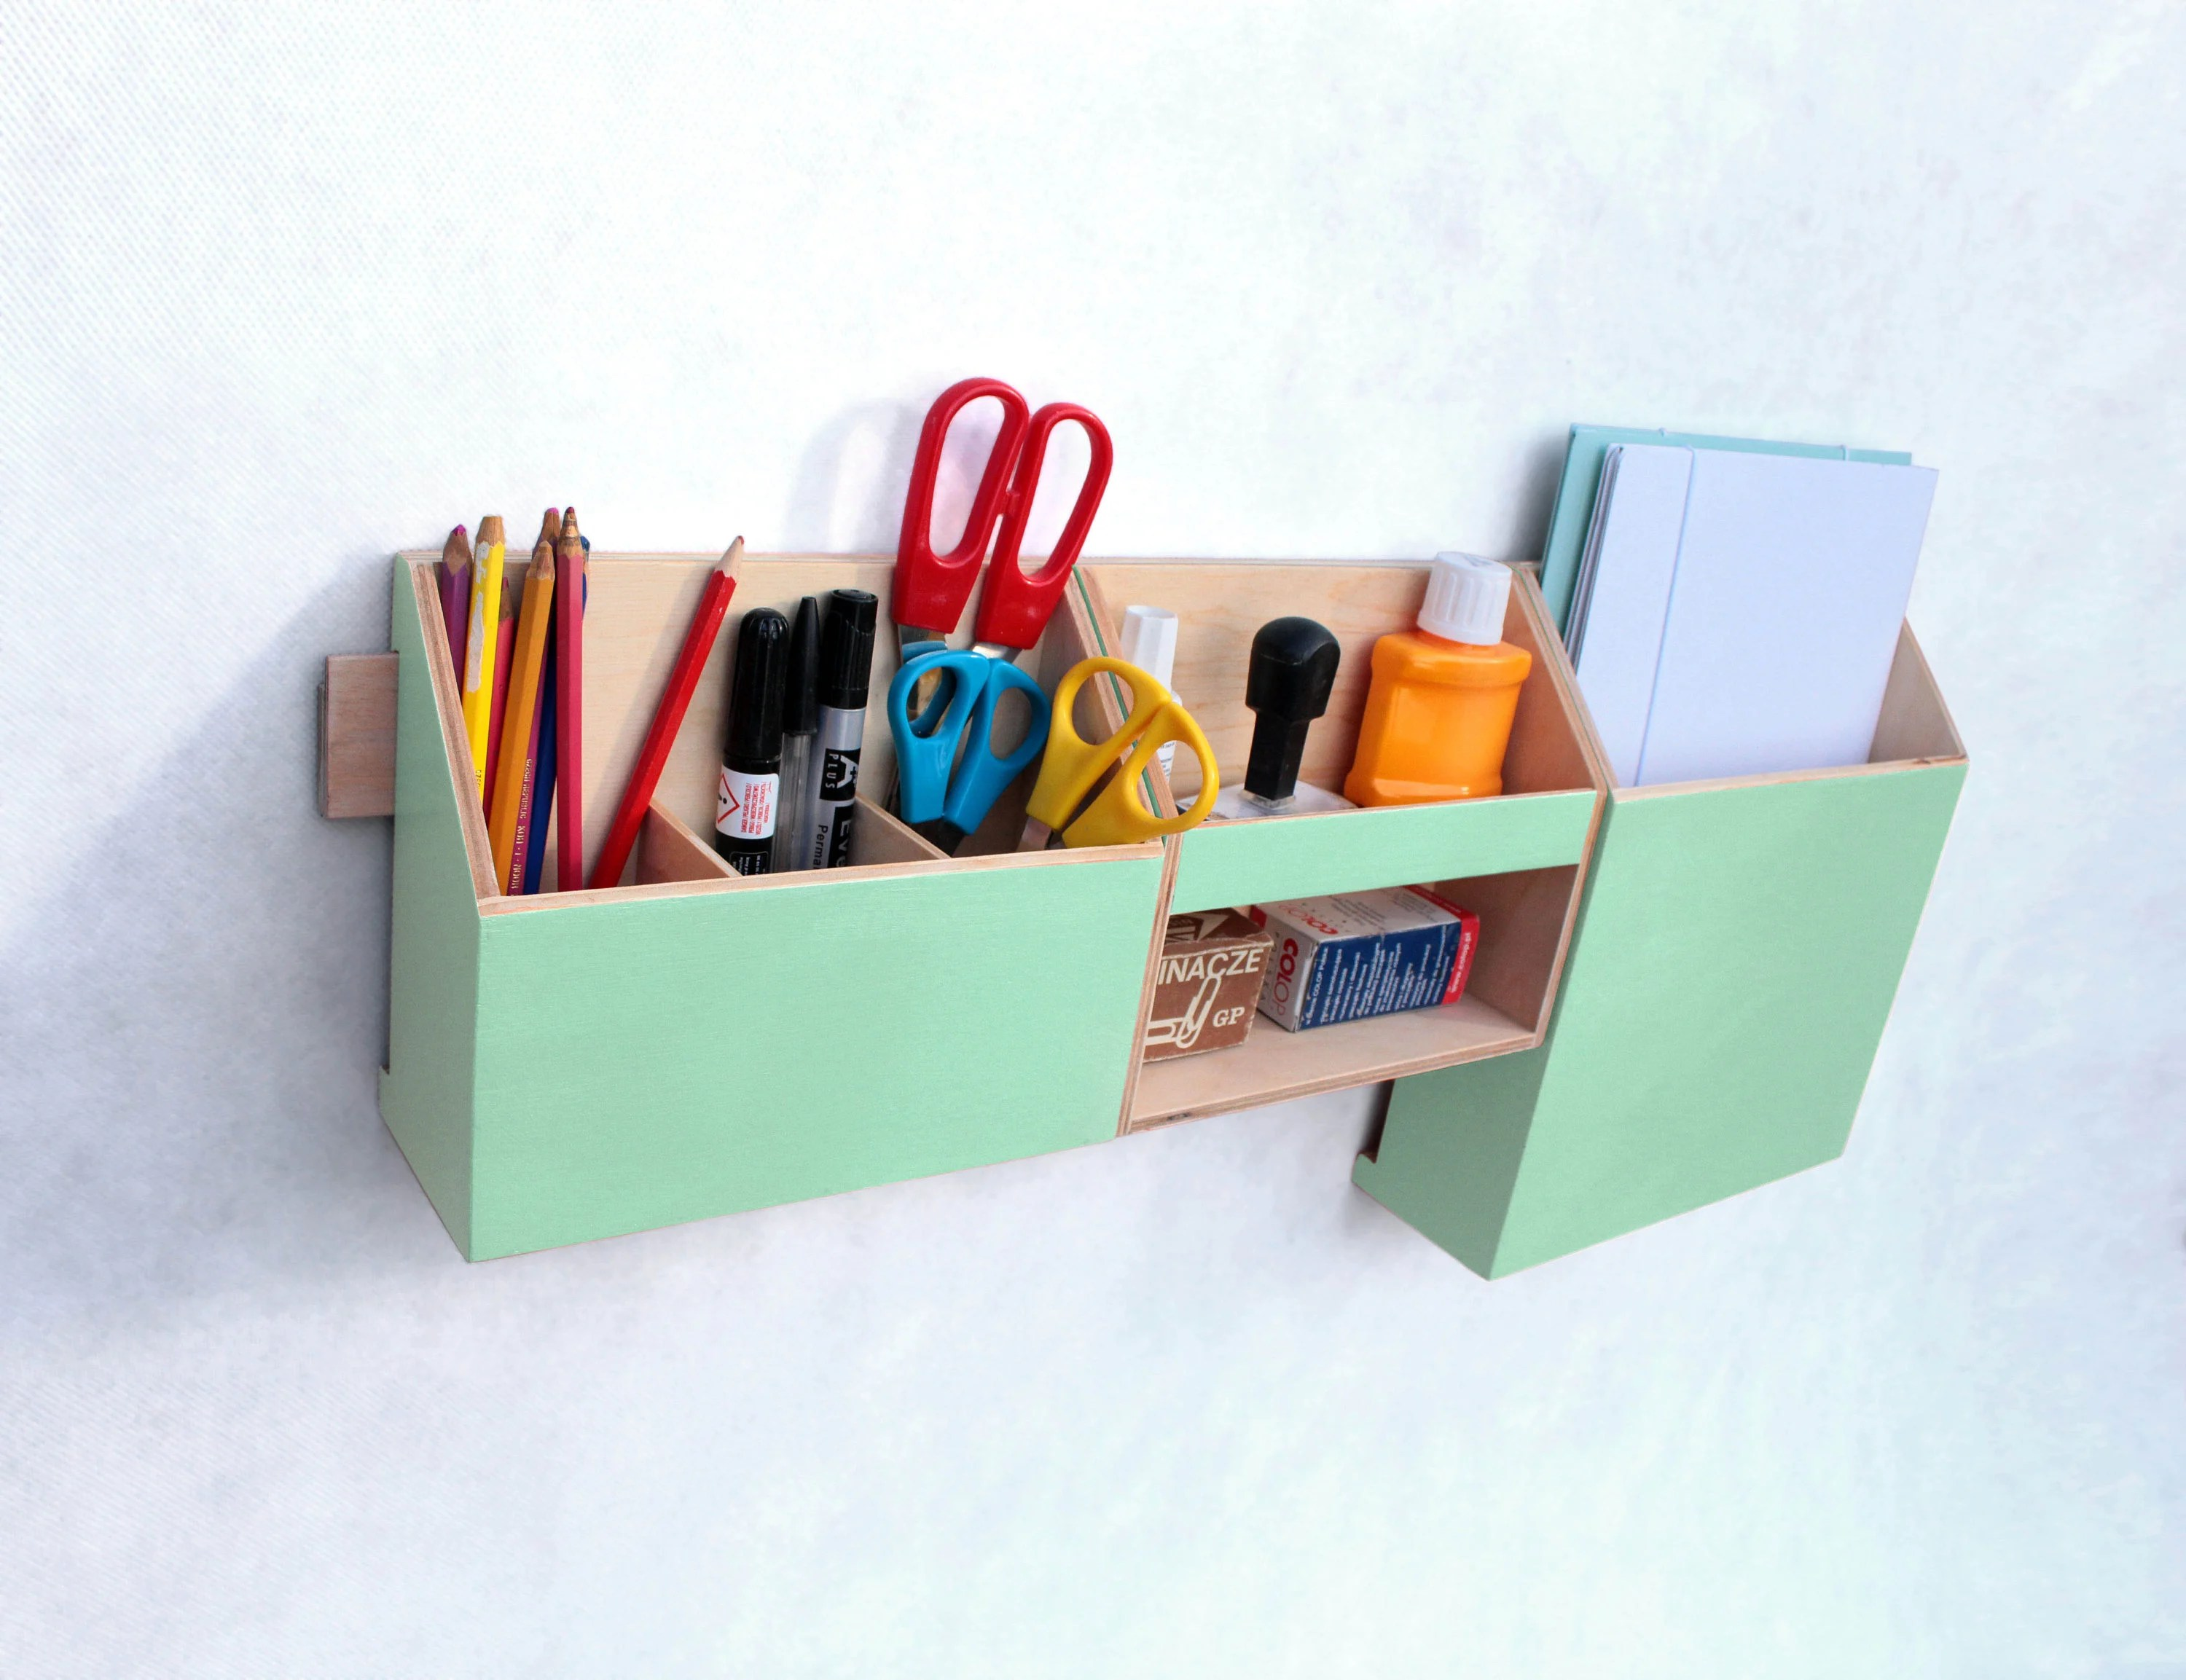 Wood Desk Organizer Set Wall Organizer Mint Green Wall Wood Set Mint Desktop